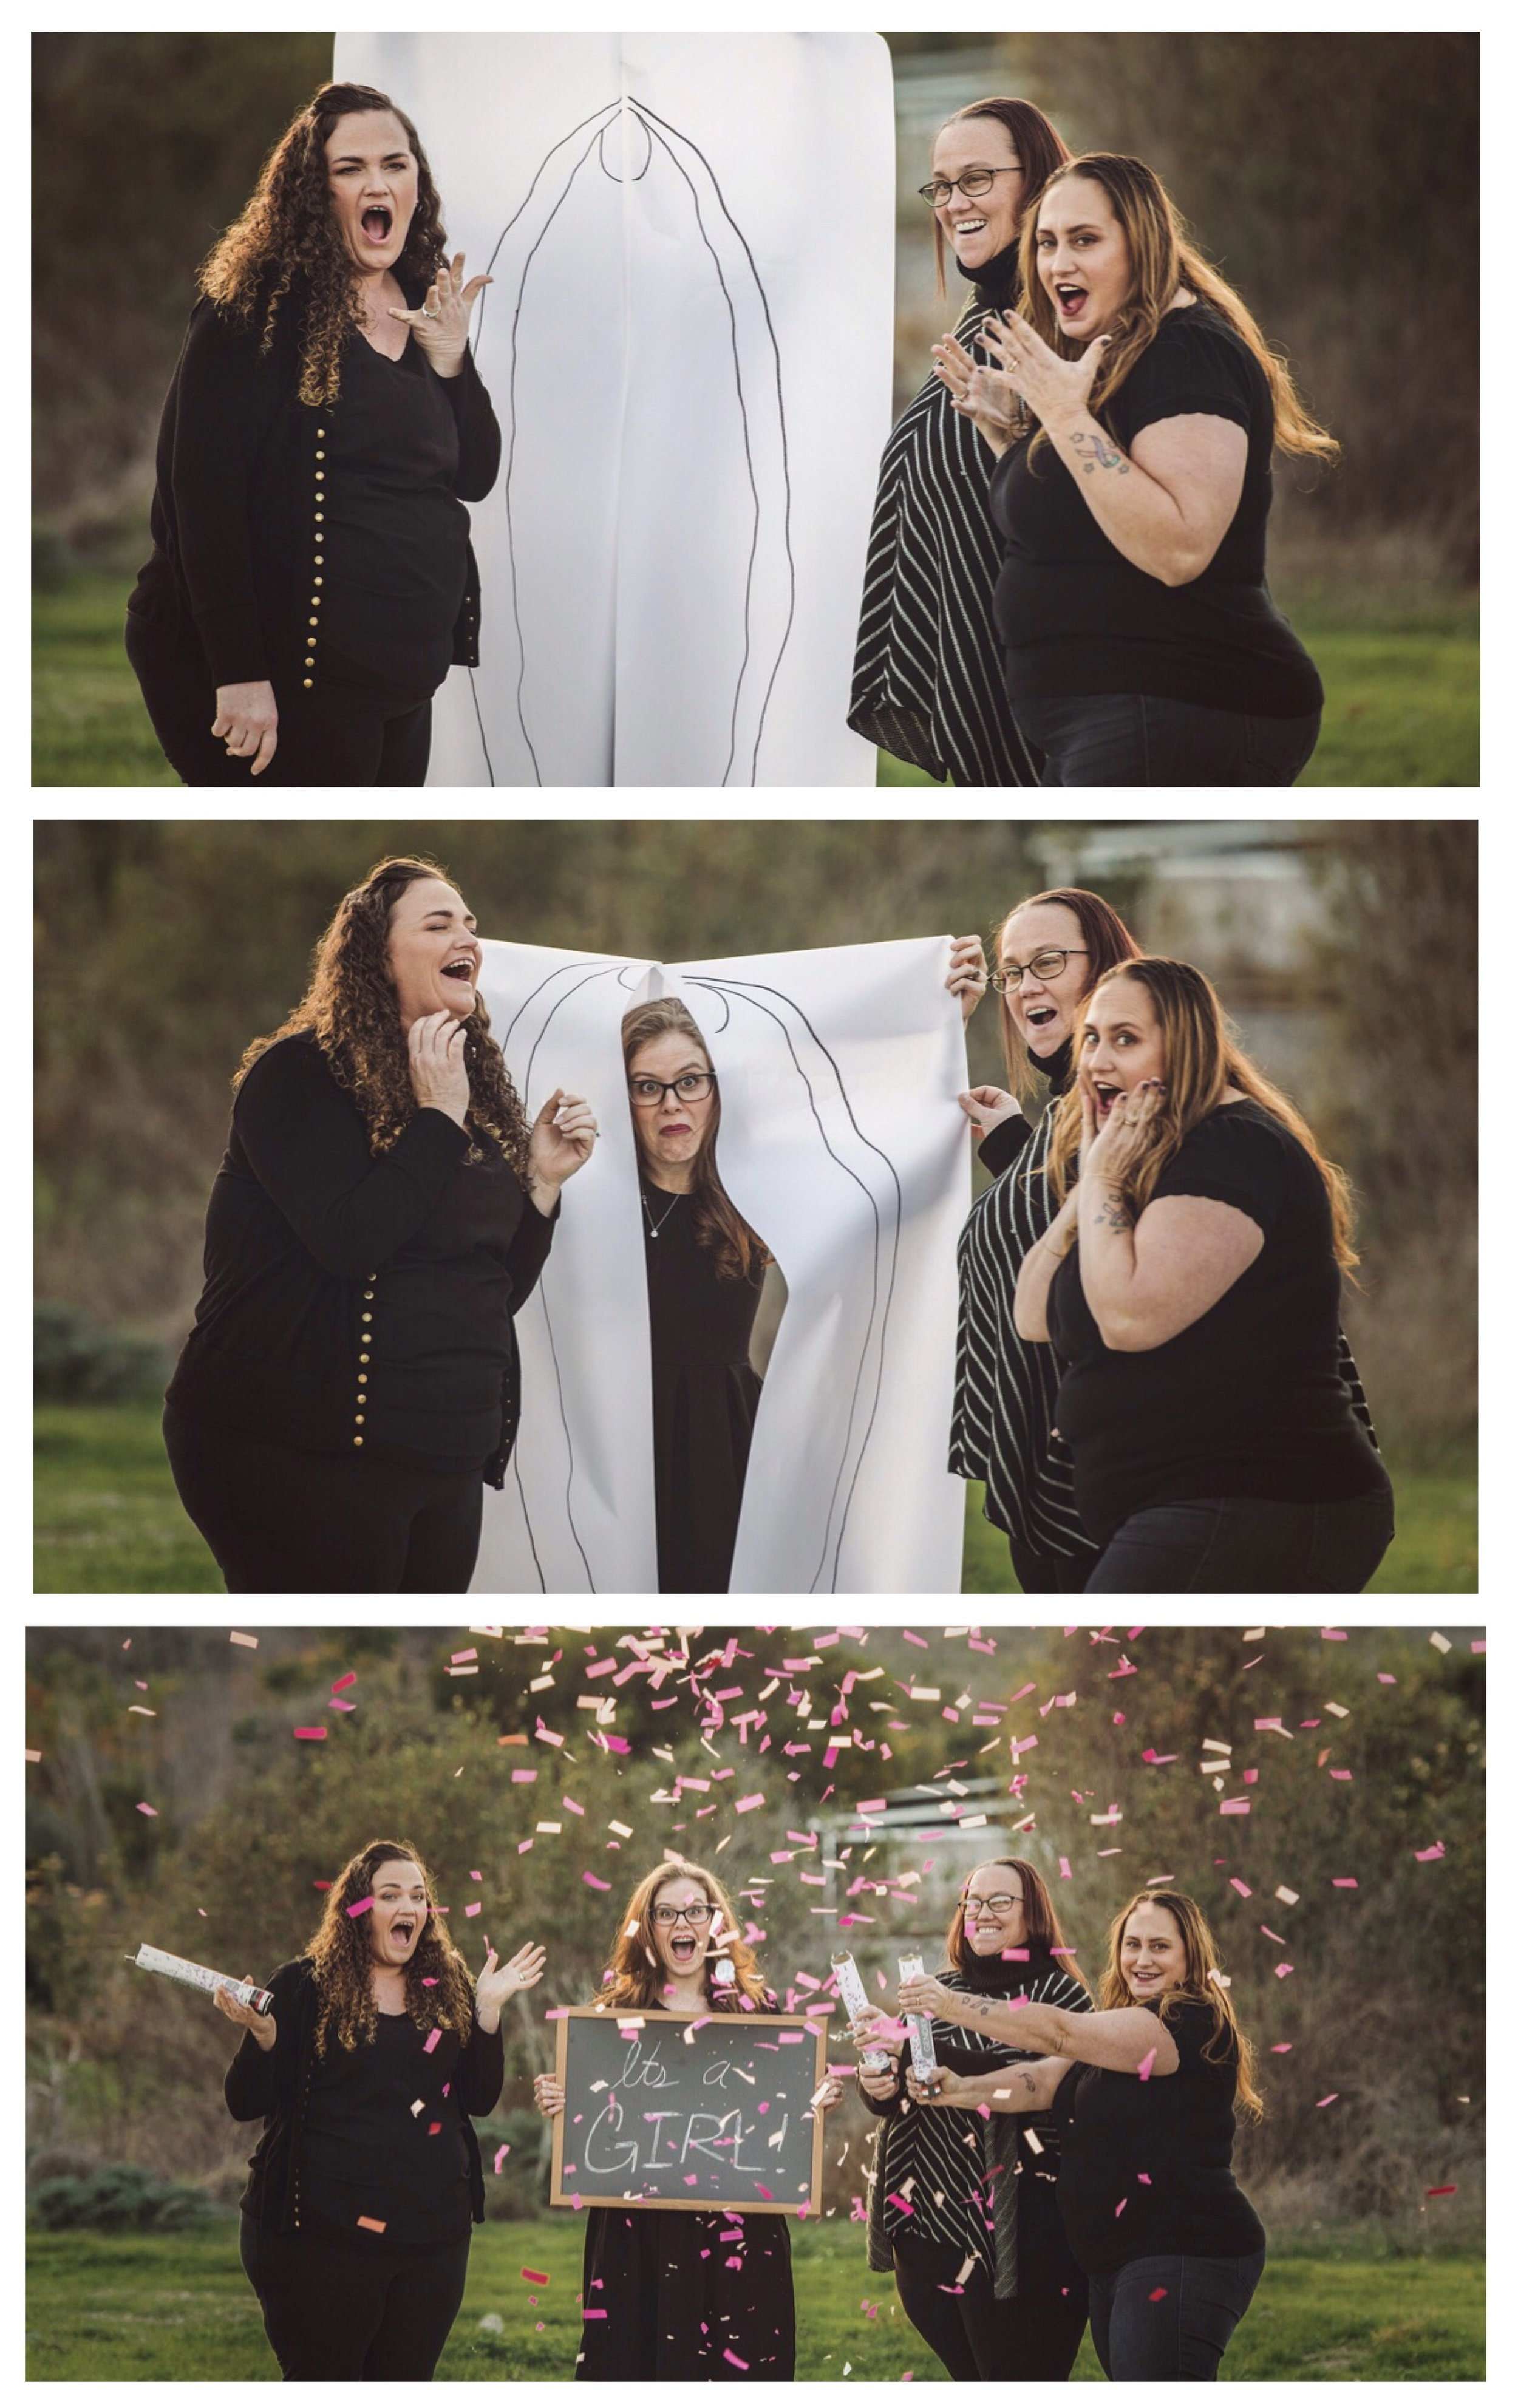 """The """"Gender Reveal"""" series was captured by photographer Megan Dendinger and is currently trending on social media."""